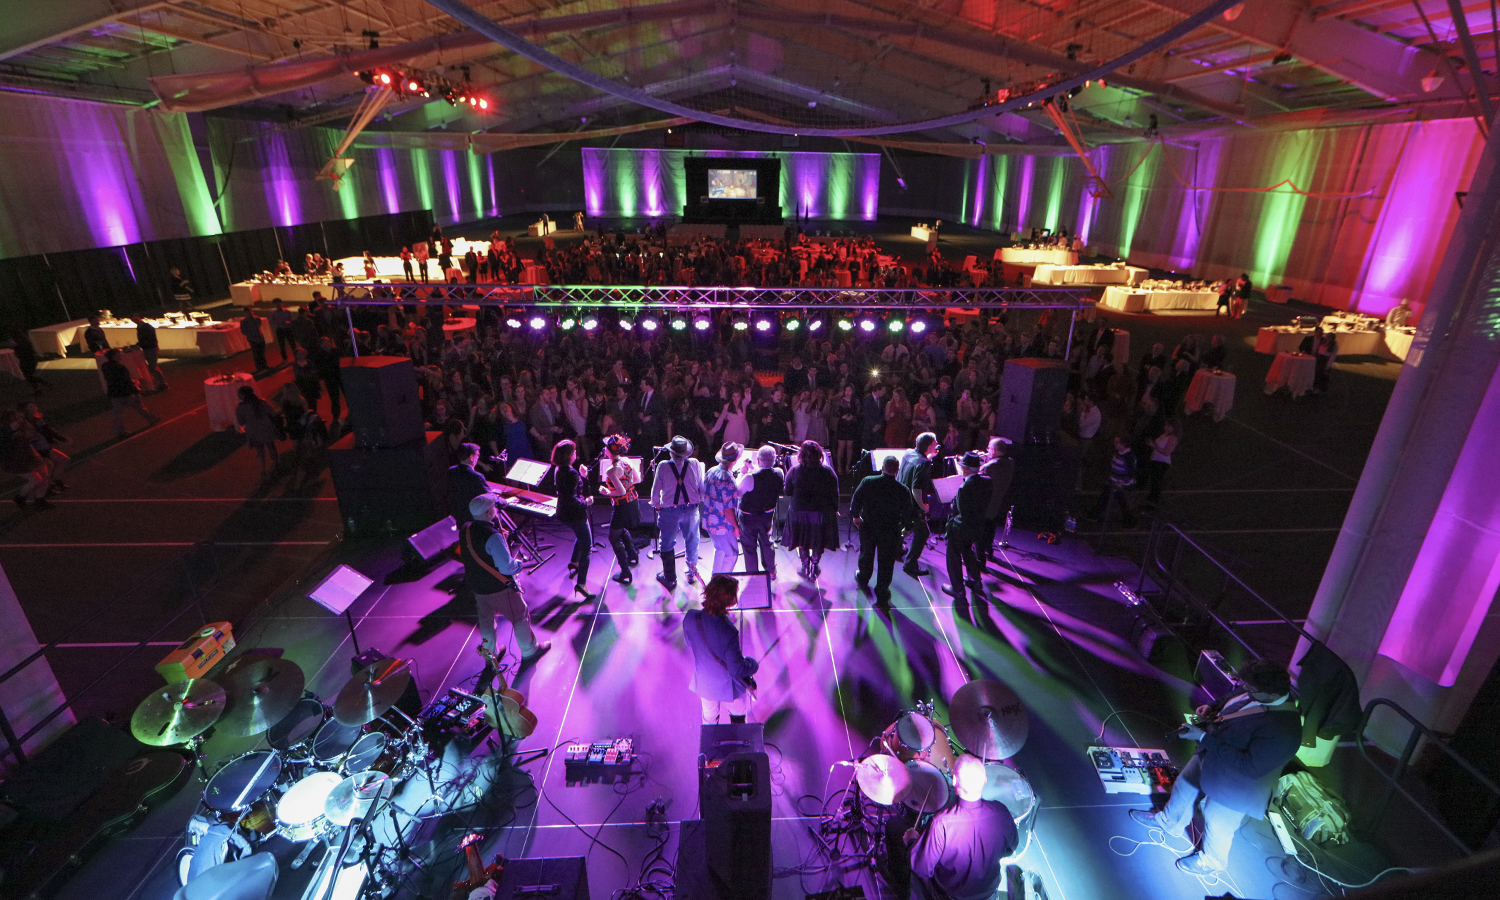 The Presidentâs Garage Band performs for students in Bristol Field House on Saturday. The Presidentsâ Ball was hosted by the presidents of multiple student organizations in honor of President Mark D. Gearan and Mary Herlihy Gearan in recognition of their service to the Colleges.